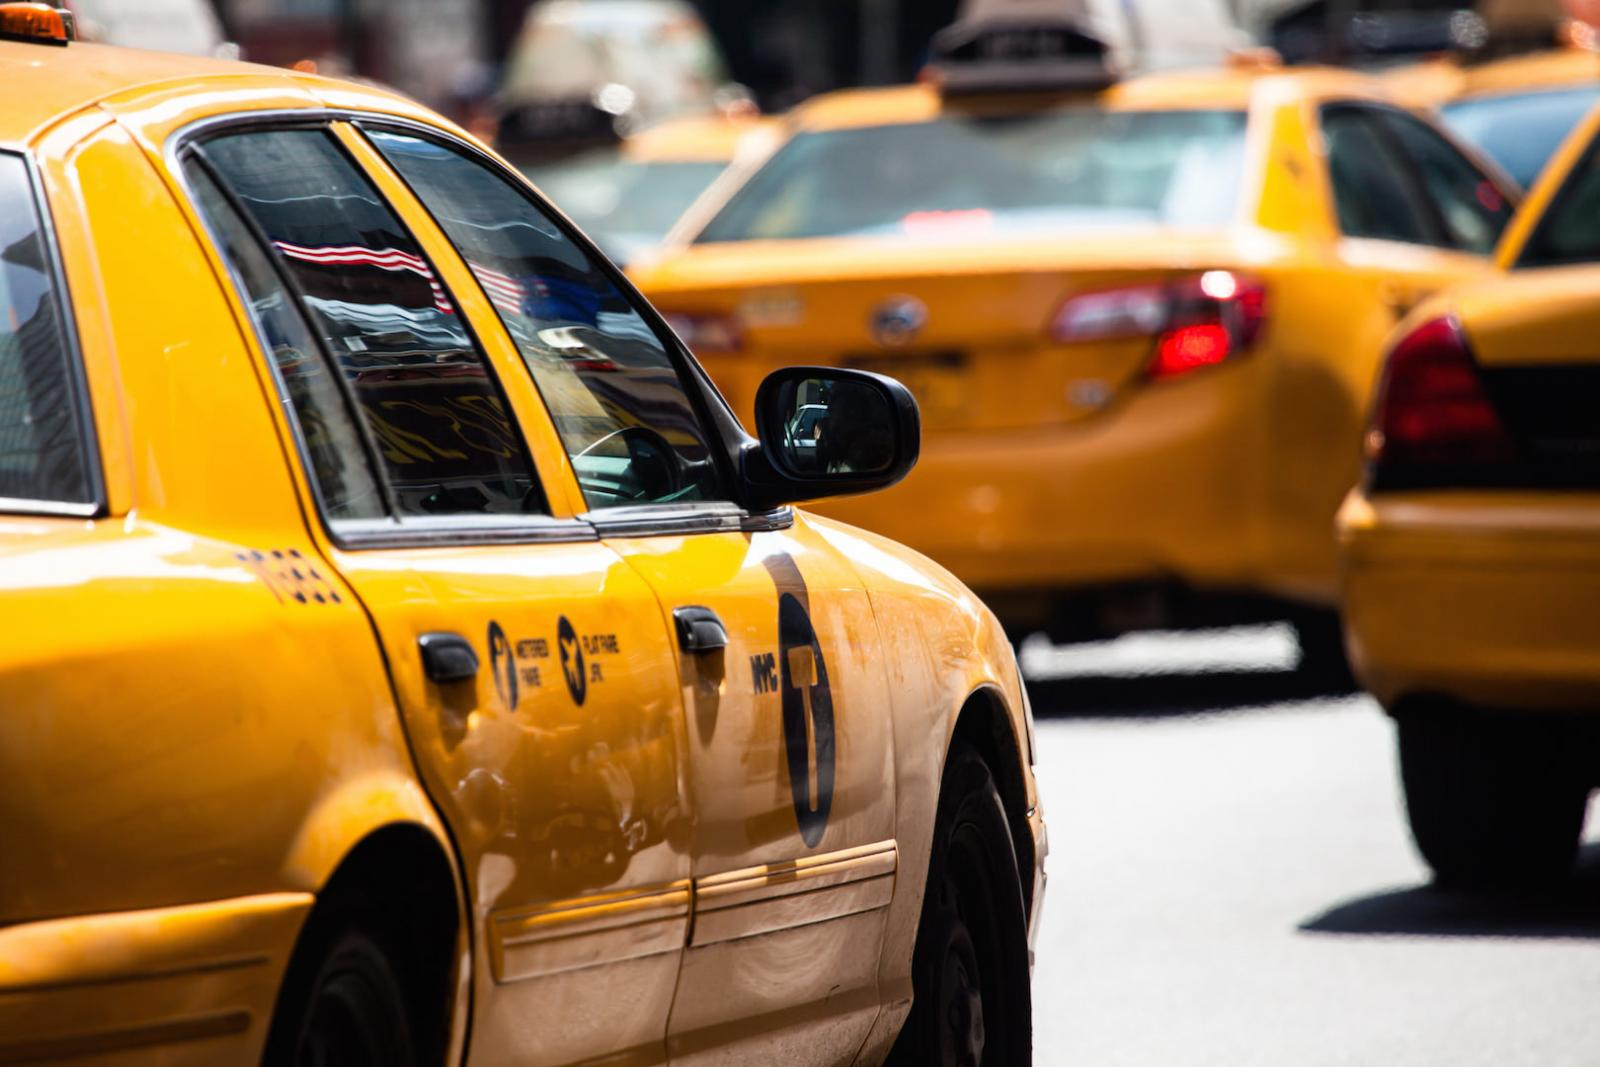 Taxi in New York City – Yellow Cabs